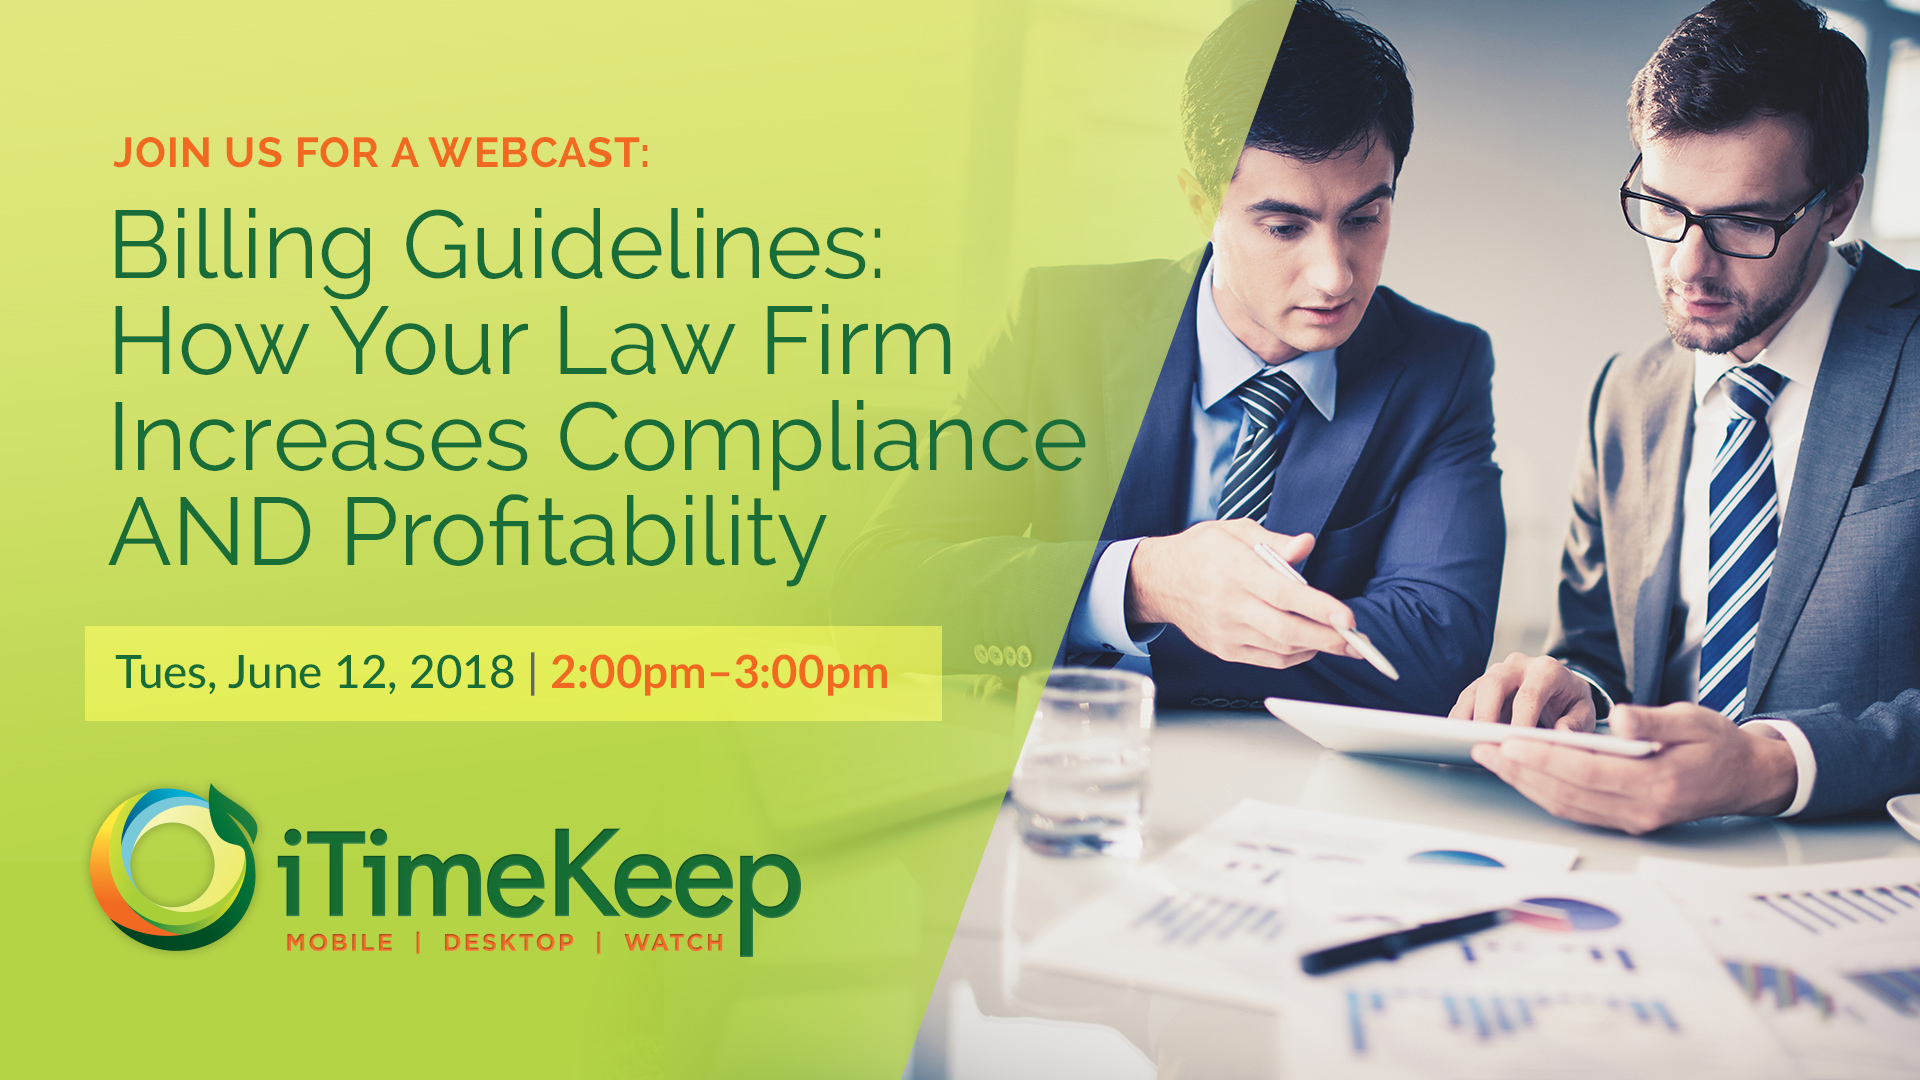 Billing Guidelines: How Your Law Firm Increases Compliance and Profitability